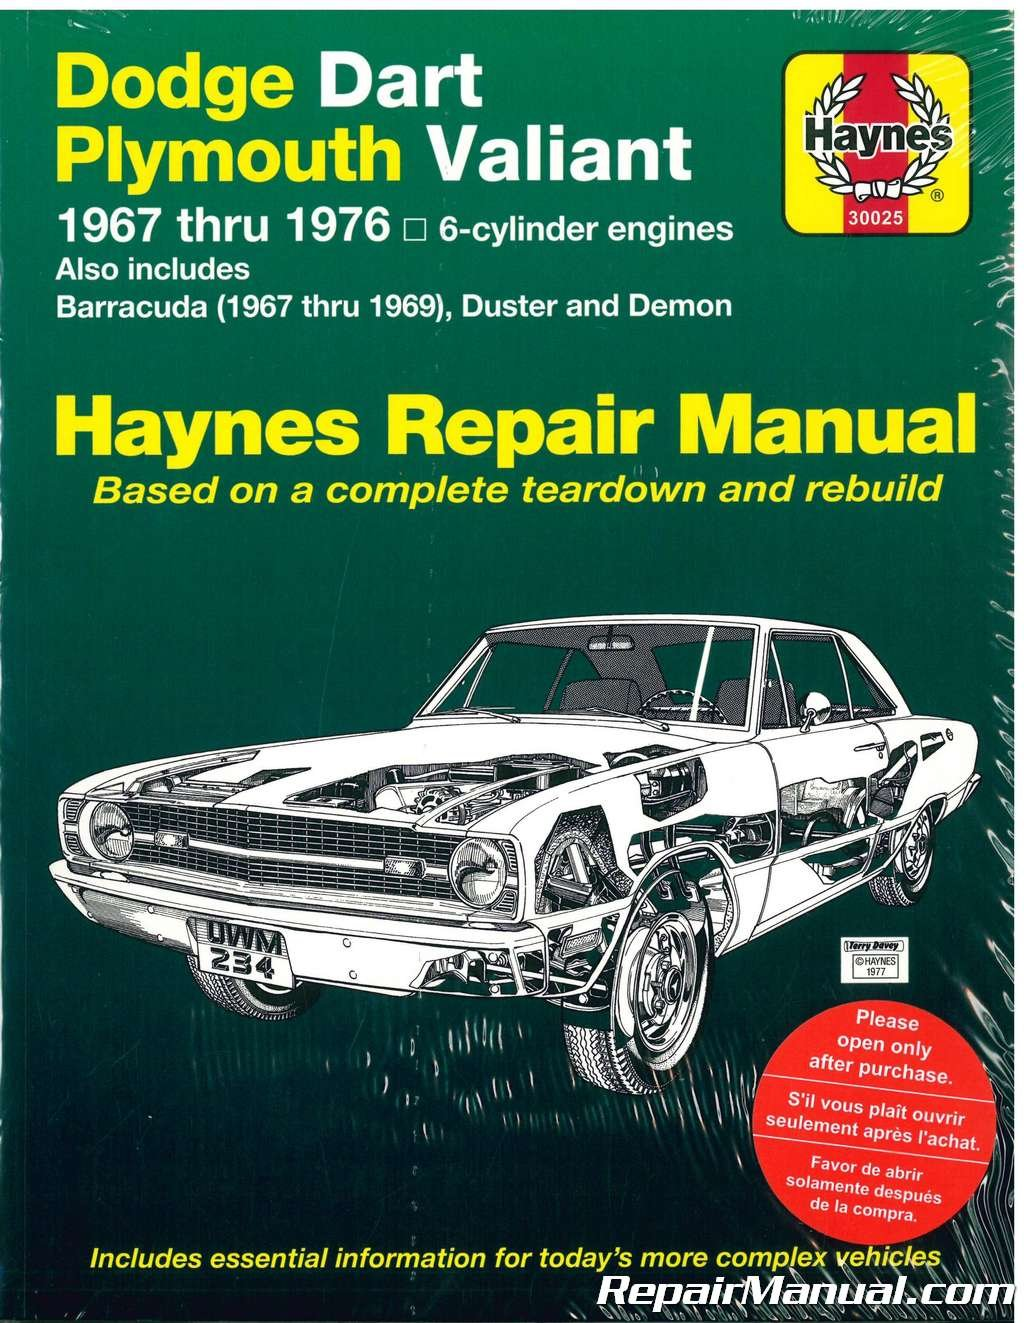 Online Car Wiring Diagrams 1967 Dart Expert Schematics Diagram 1969 Barracuda H30025 Haynes Dodge Plymouth Demon Valiant Duster Nhra